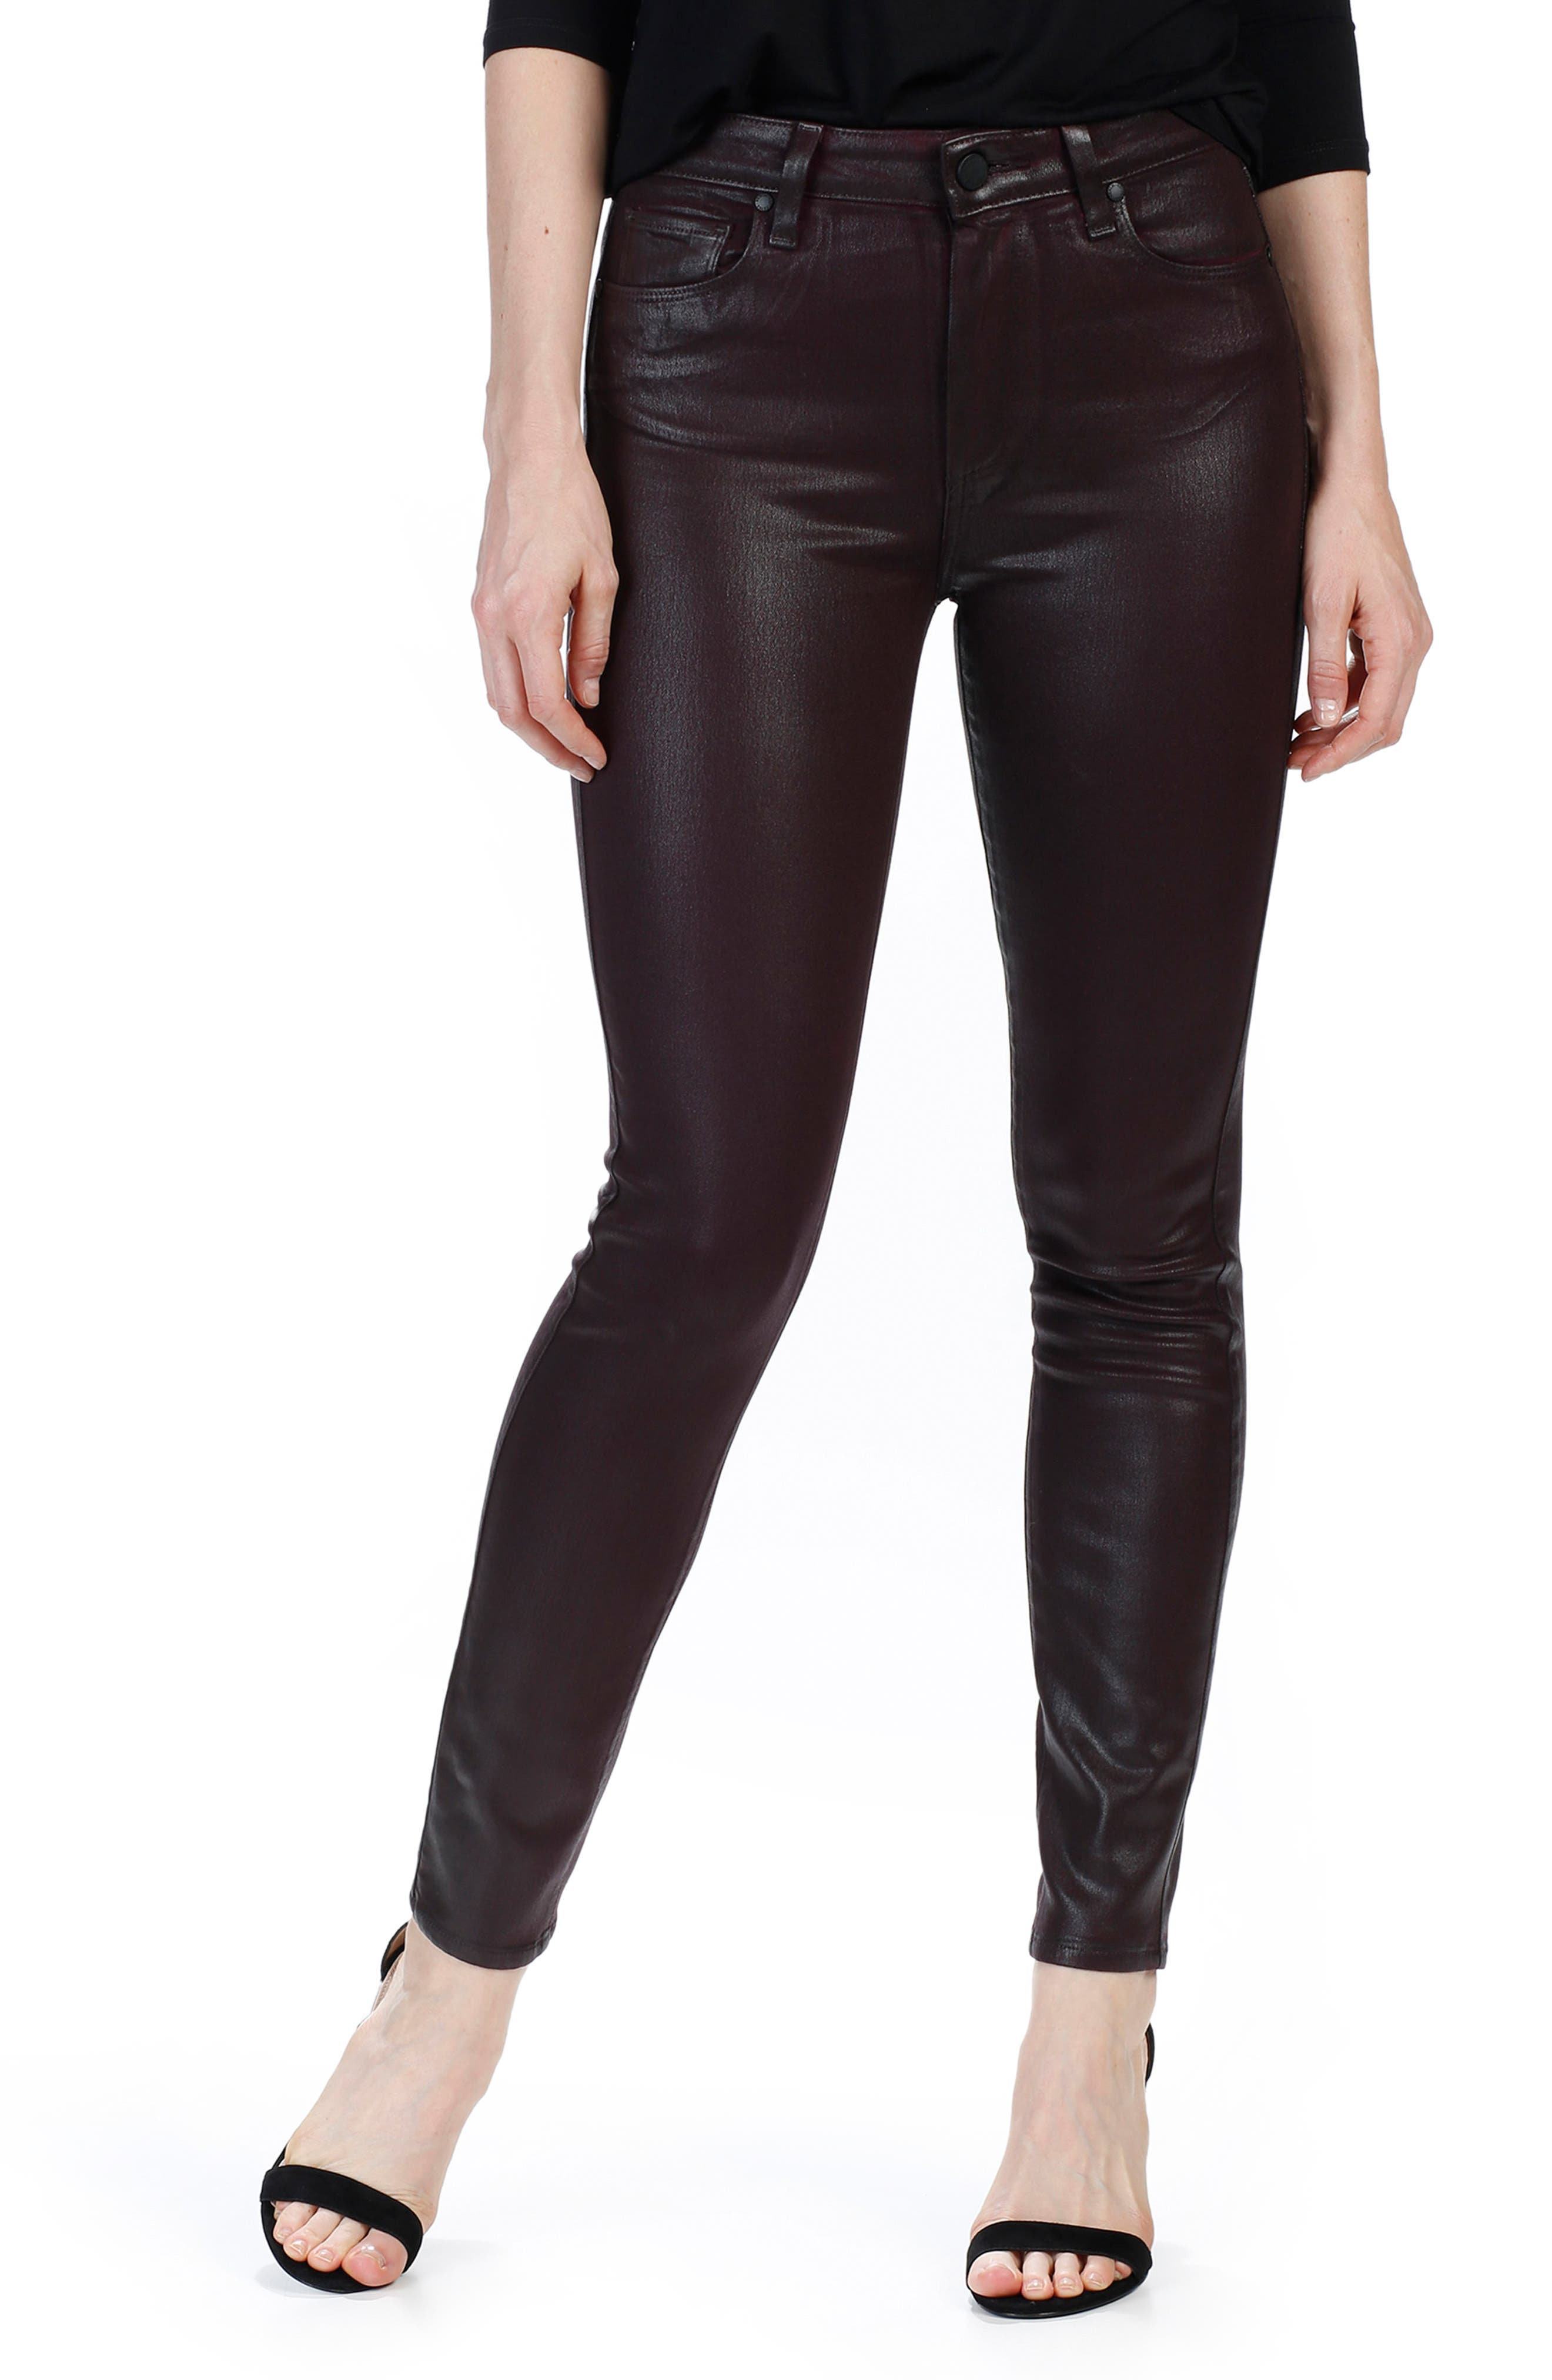 Alternate Image 1 Selected - PAIGE Transcend - Hoxton High Waist Ankle Skinny Jeans (Wine Luxe Coated)